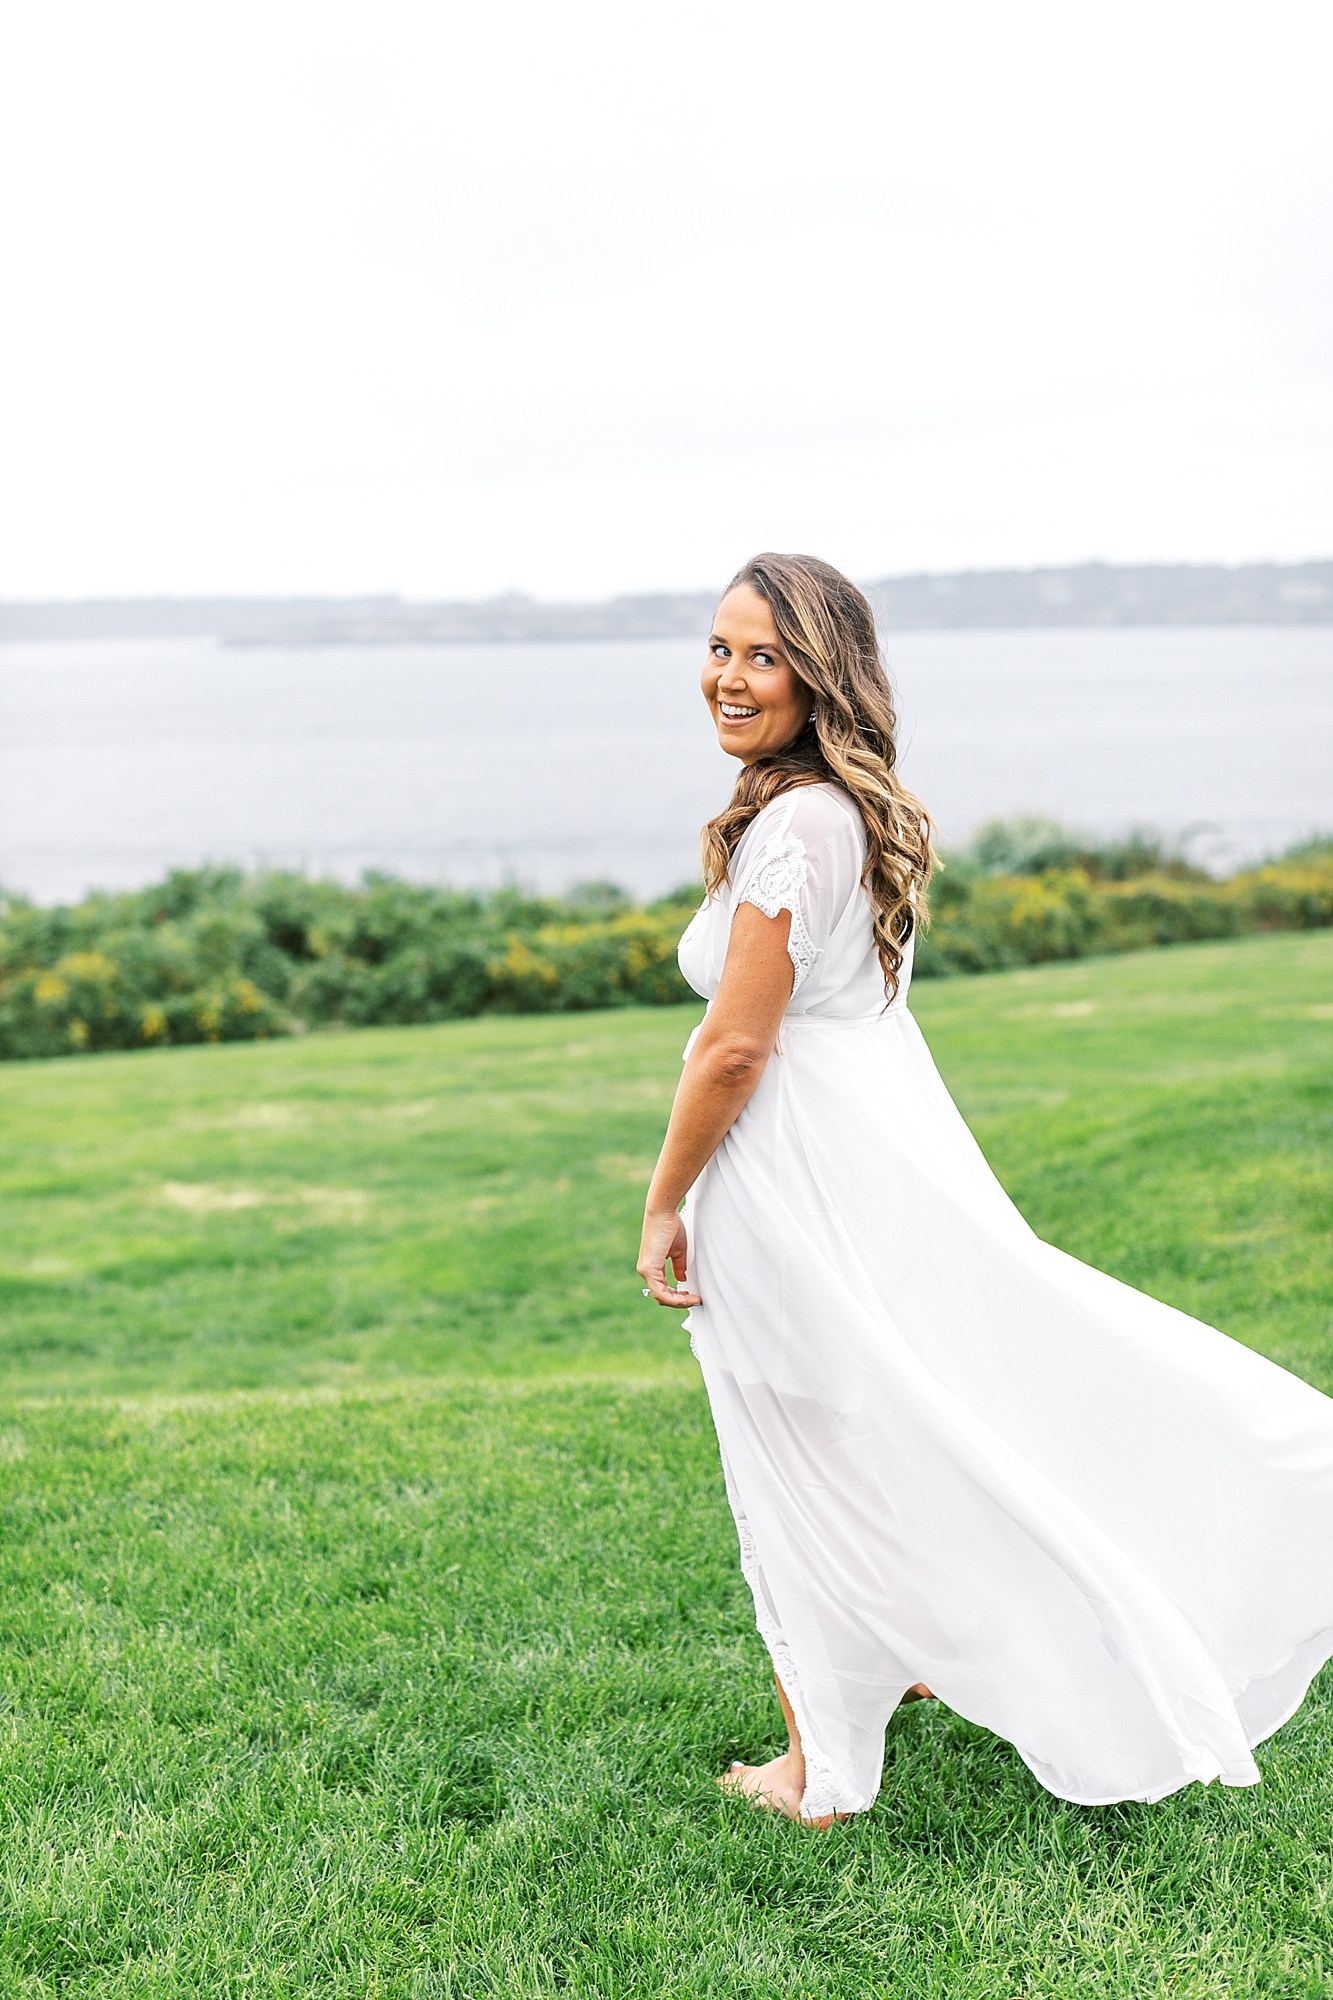 Coastal and Authentic Film Wedding Photography in Newport Rhode Island by Magdalena Studios 0004